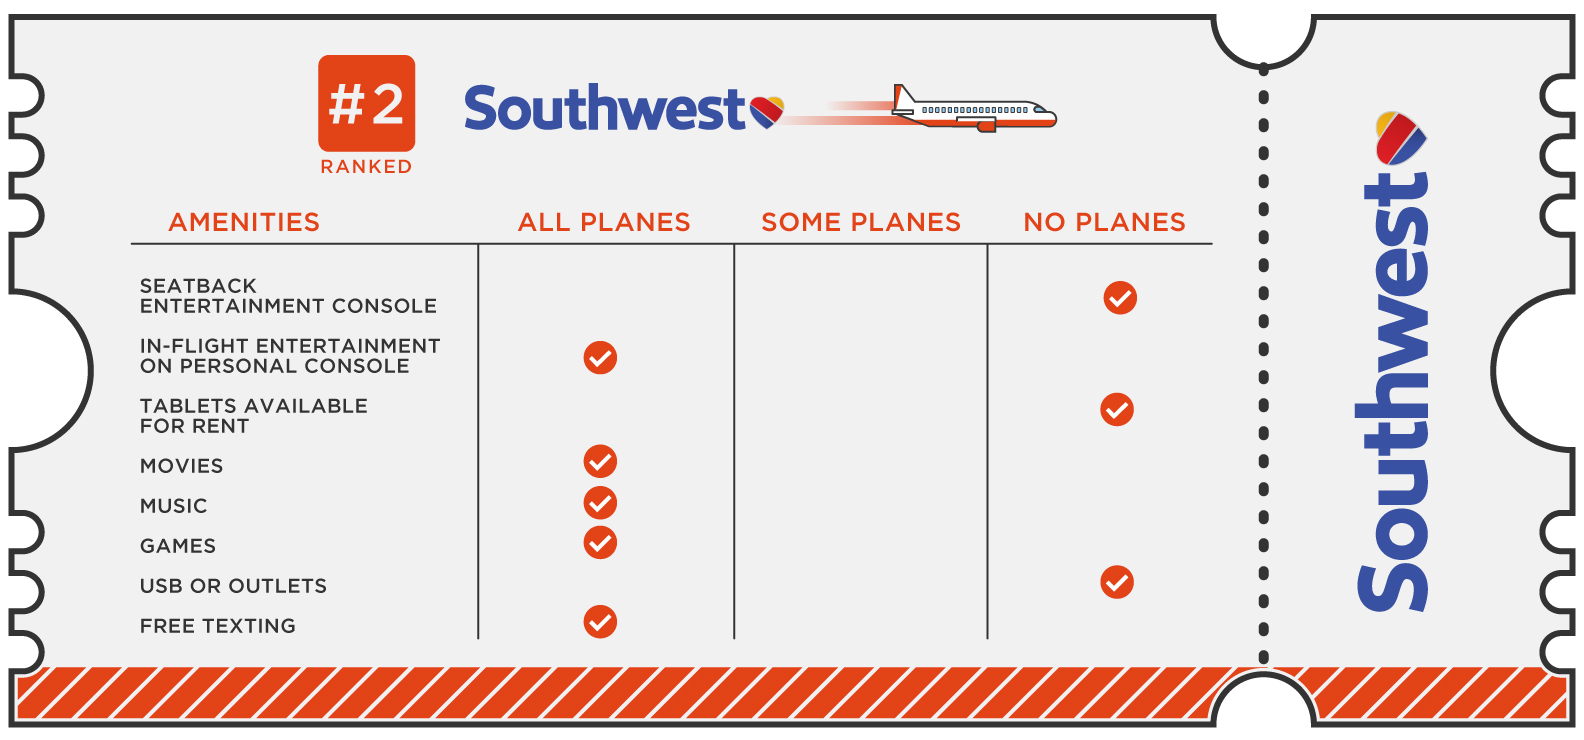 Southwest came in second place, and most notably has more than a dozen TV channels to watch live while you fly. (Image: CableTV.com)